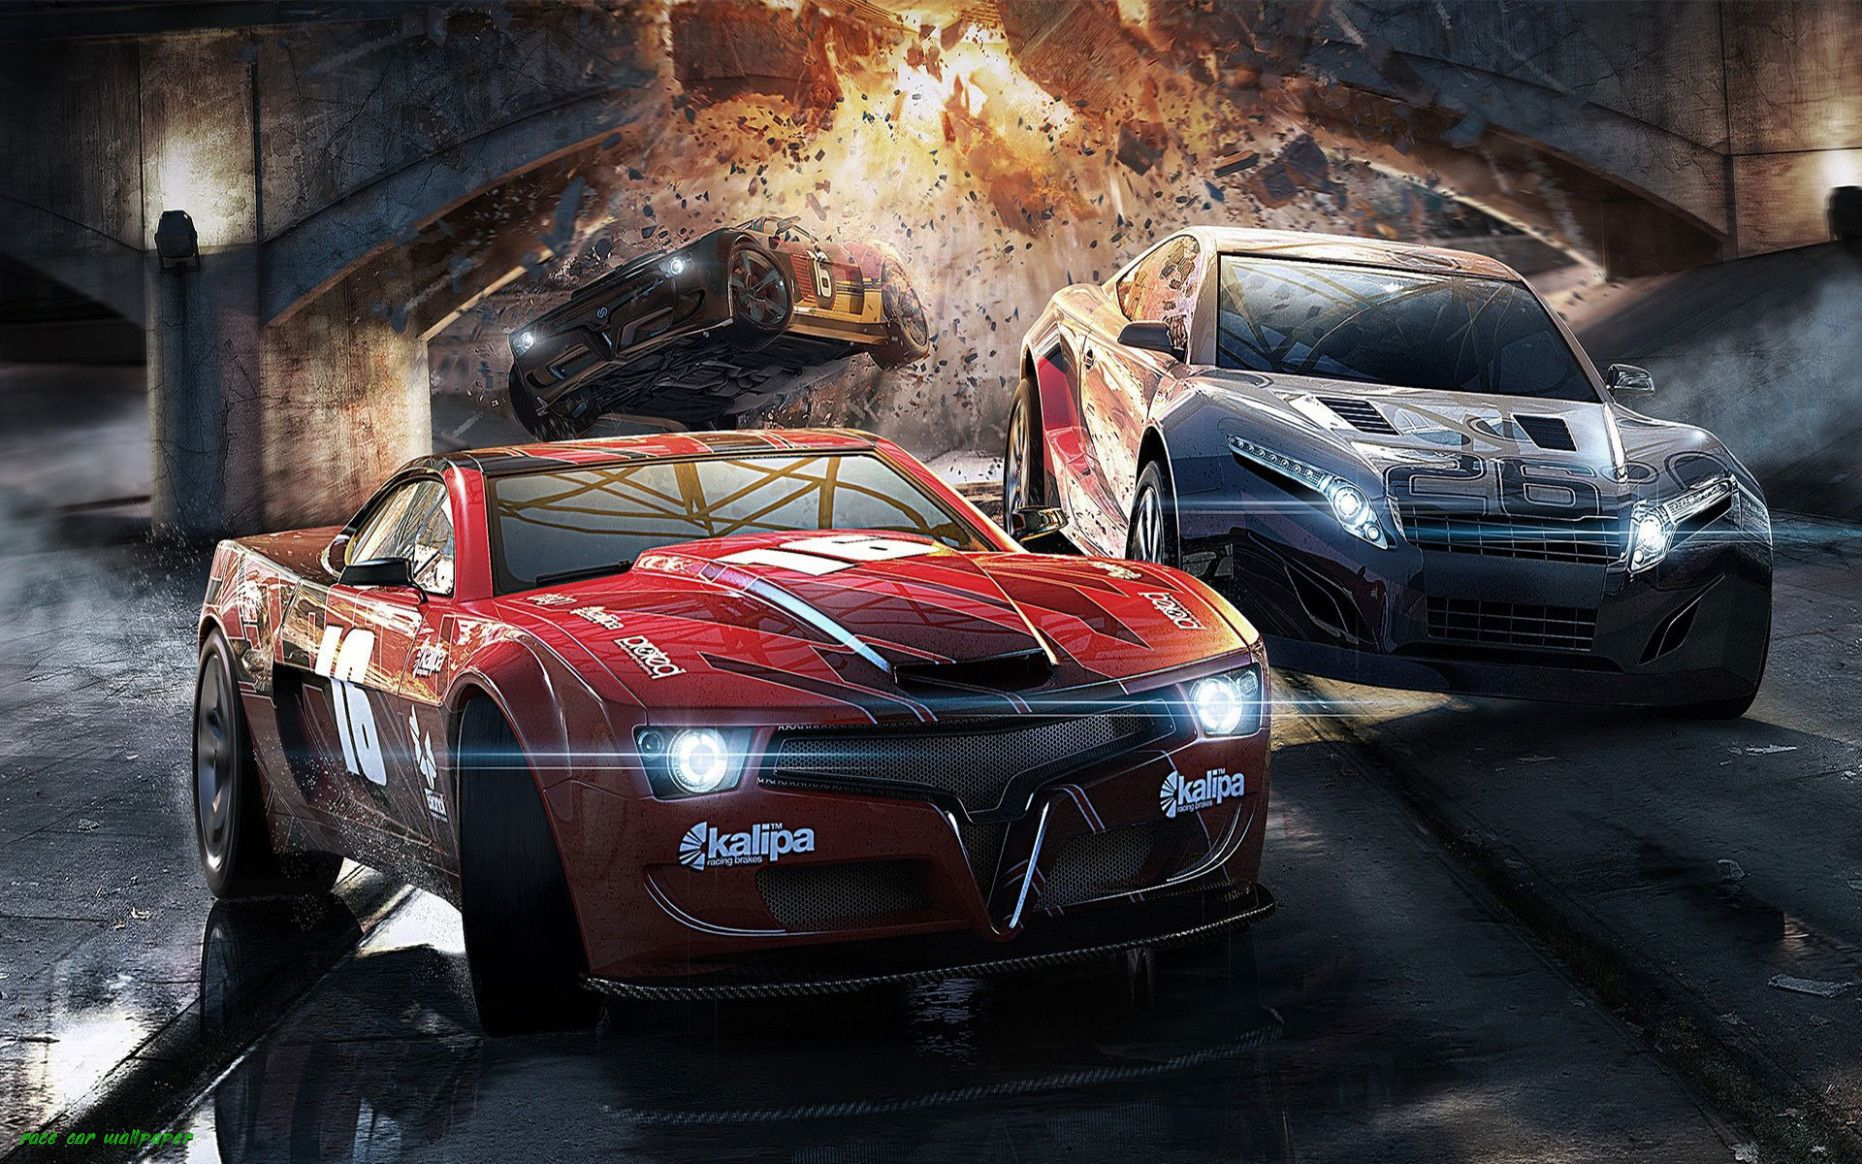 Race Car Wallpaper Is So Famous But Why Race Car Wallpaper Https Www Flowernifty Com Race Car Wallpa New Car Wallpaper Sports Car Wallpaper Car Wallpapers